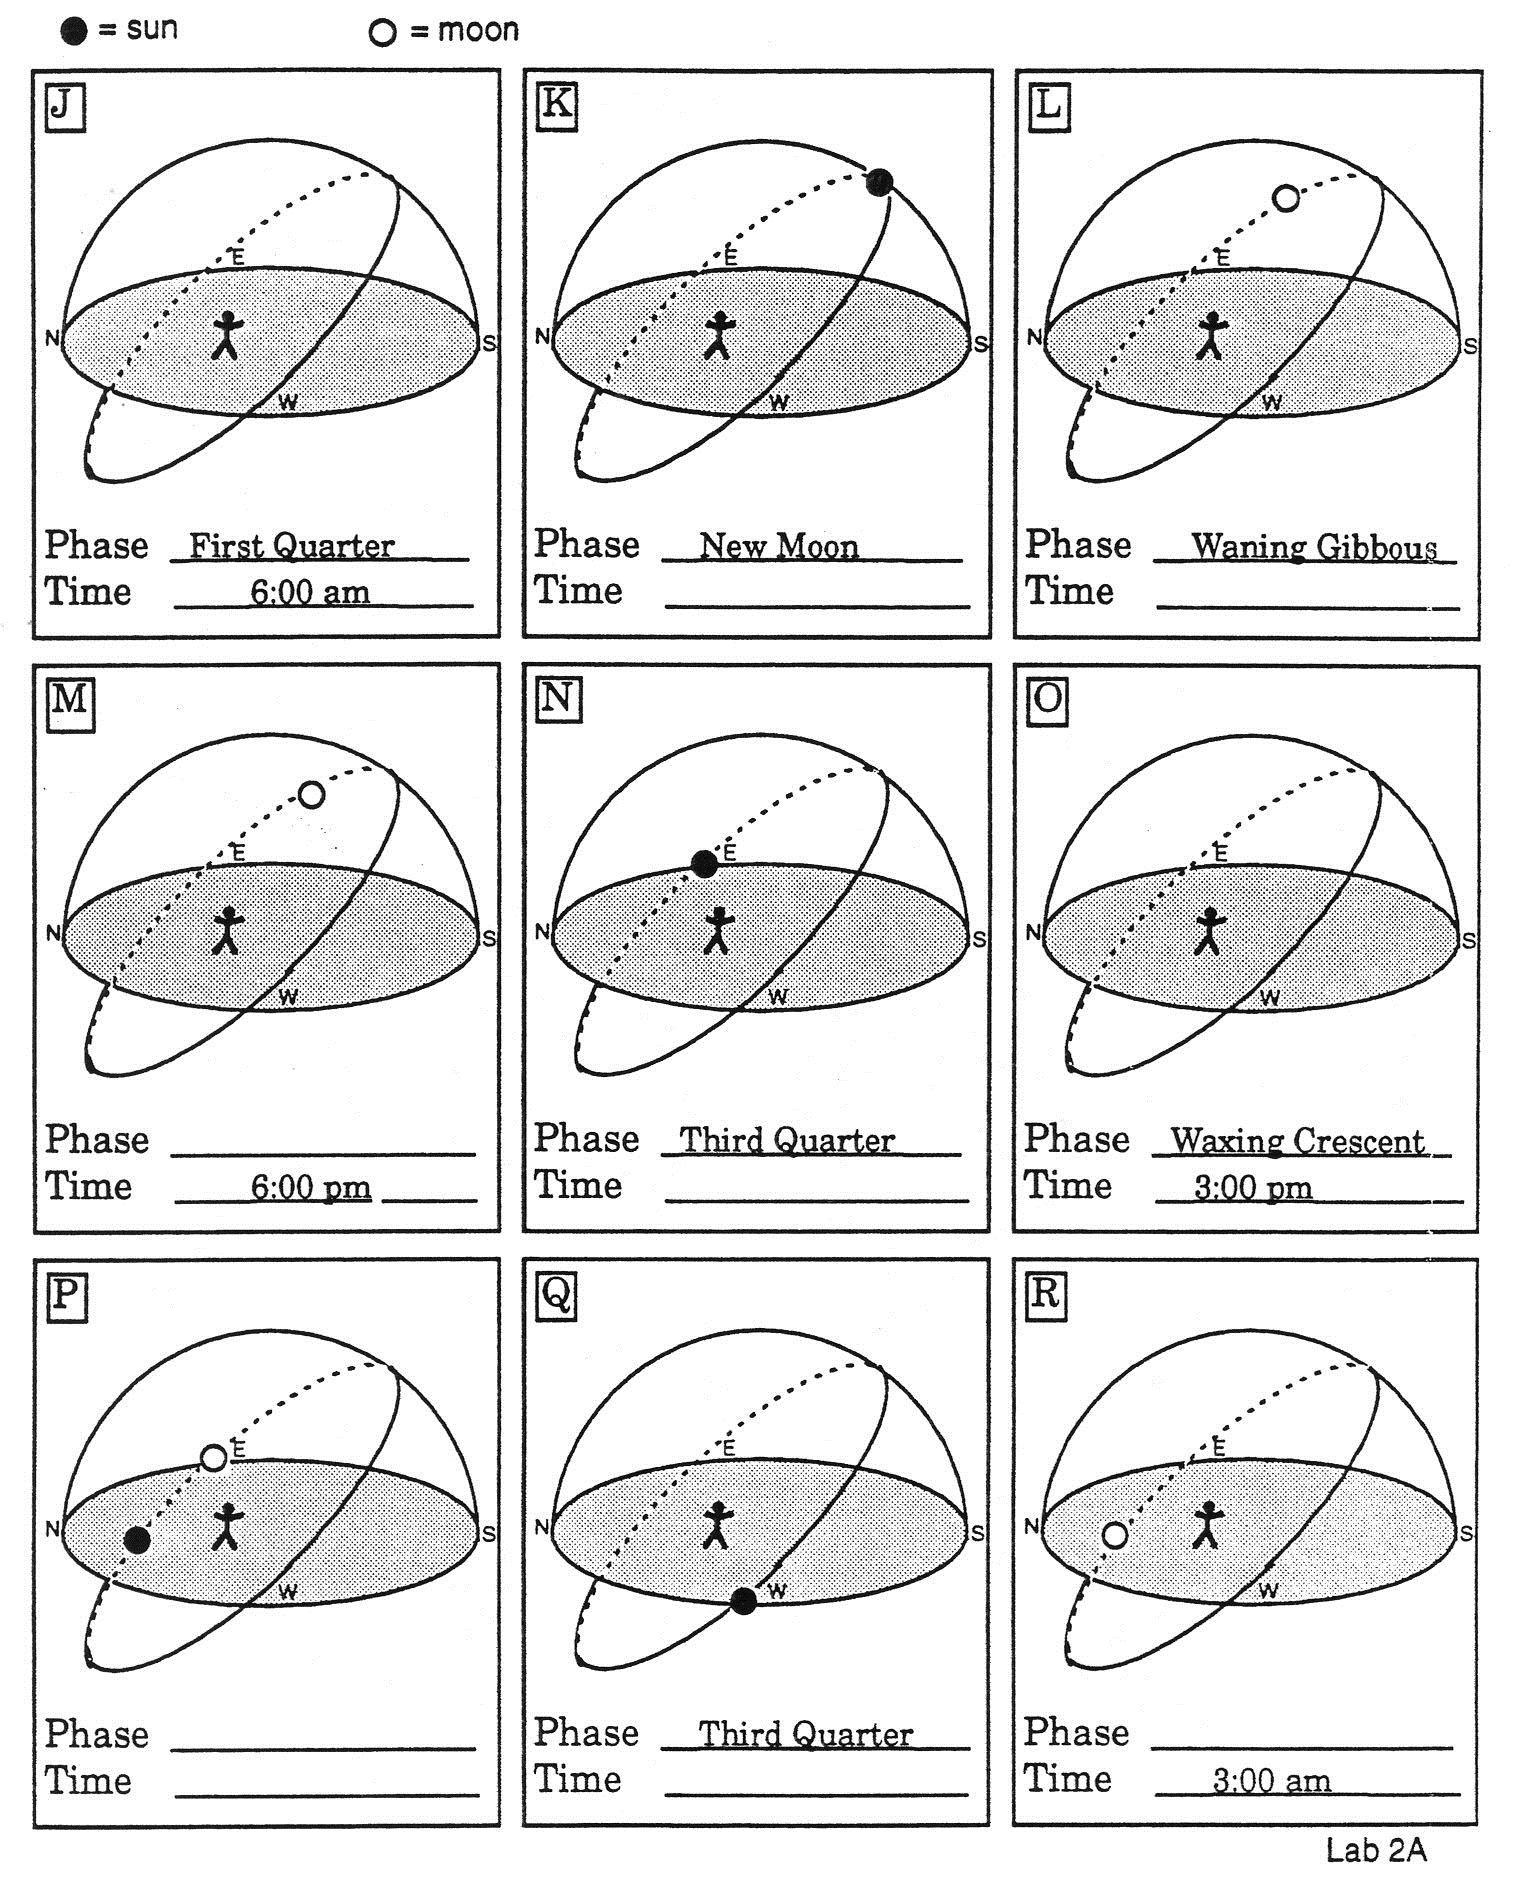 moon phases blank worksheet new calendar template site. Black Bedroom Furniture Sets. Home Design Ideas